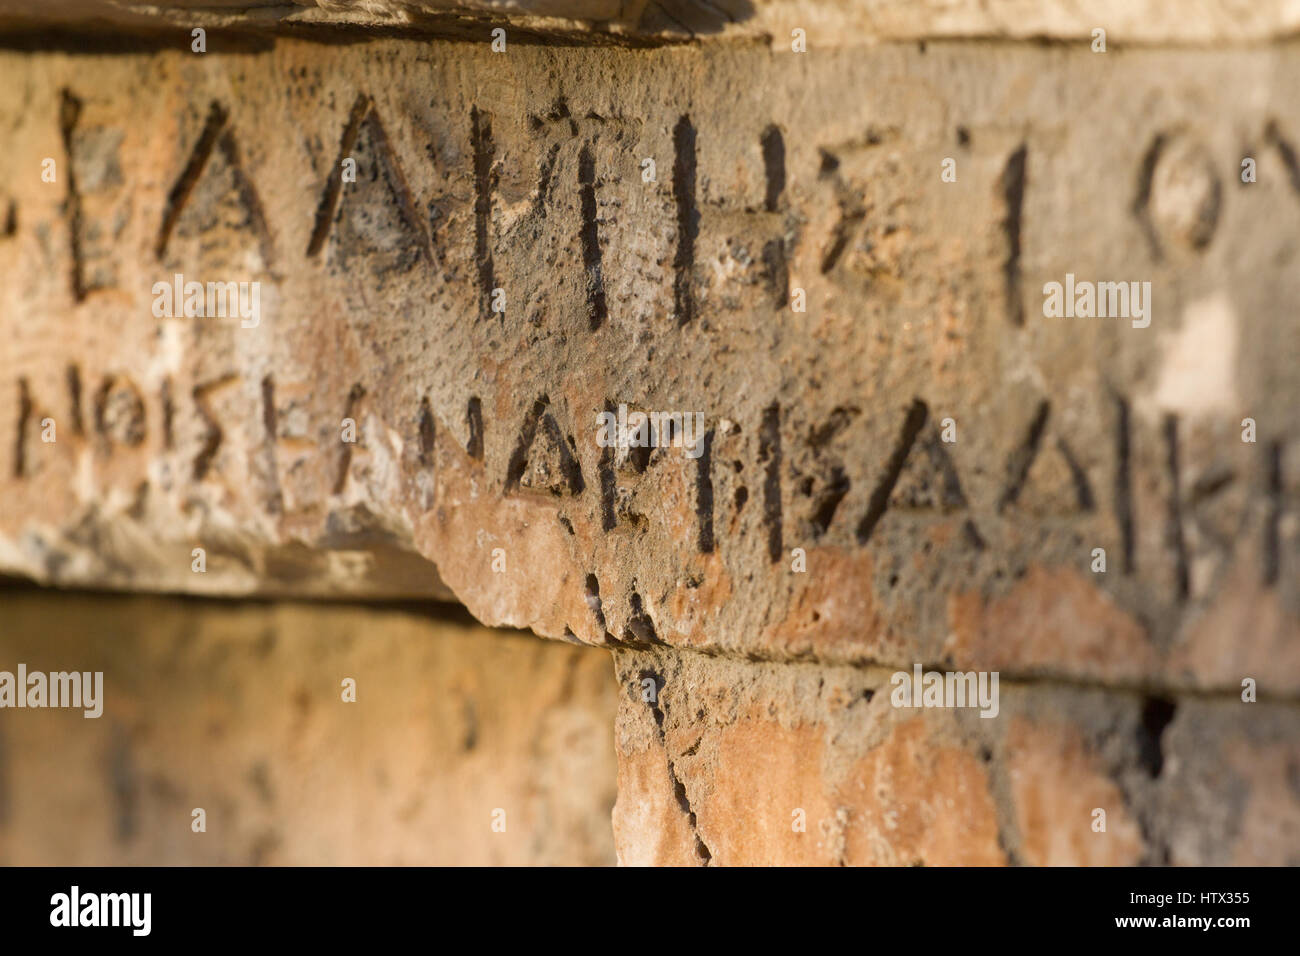 Inscription on old tomb in the greek language characters symbols inscription on old tomb in the greek language characters symbols hieroglyphs biocorpaavc